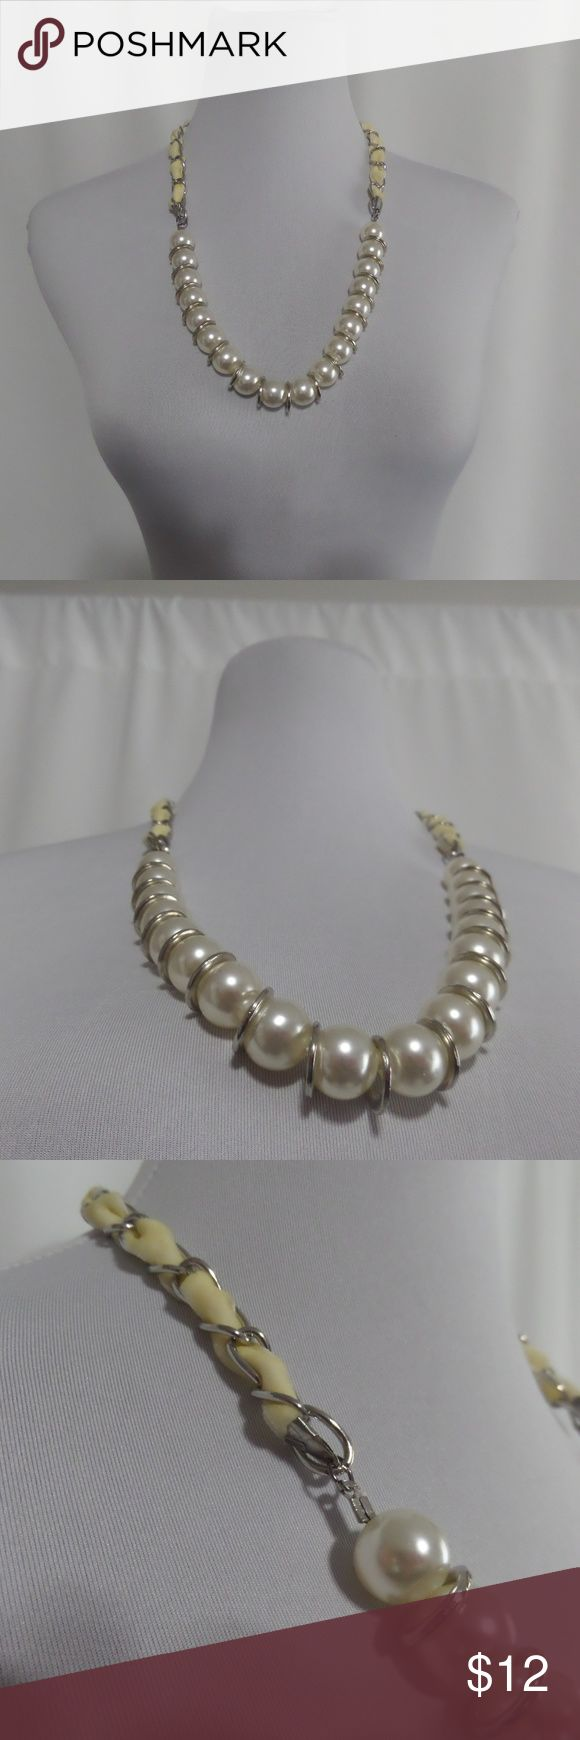 """Chunky Pearl Necklace Chunky Pearl Necklace Weave patterned back ~26"""" length  Costume Jewelry Items as pictured Chuns Fashion Jewelry Necklaces"""